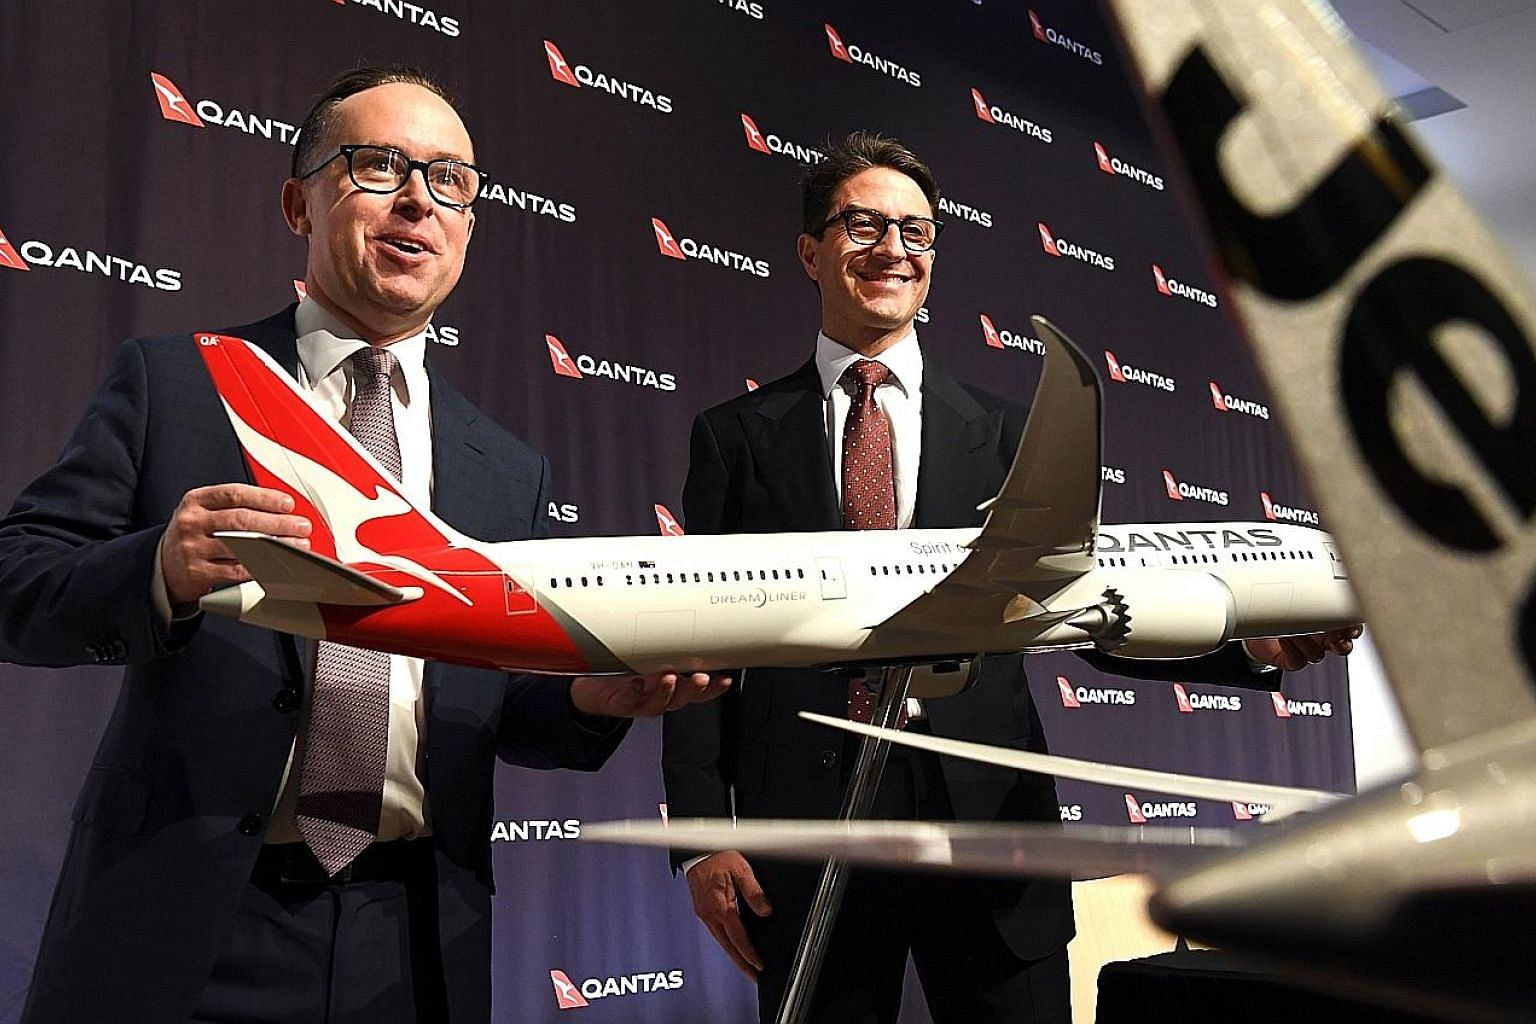 Qantas forecast an A$690 million (S$690 million) increase in its fuel bill for the current financial year but chief executive officer Alan Joyce (at left) said the airline should be able to fully recover rising fuel costs in the domestic market and d